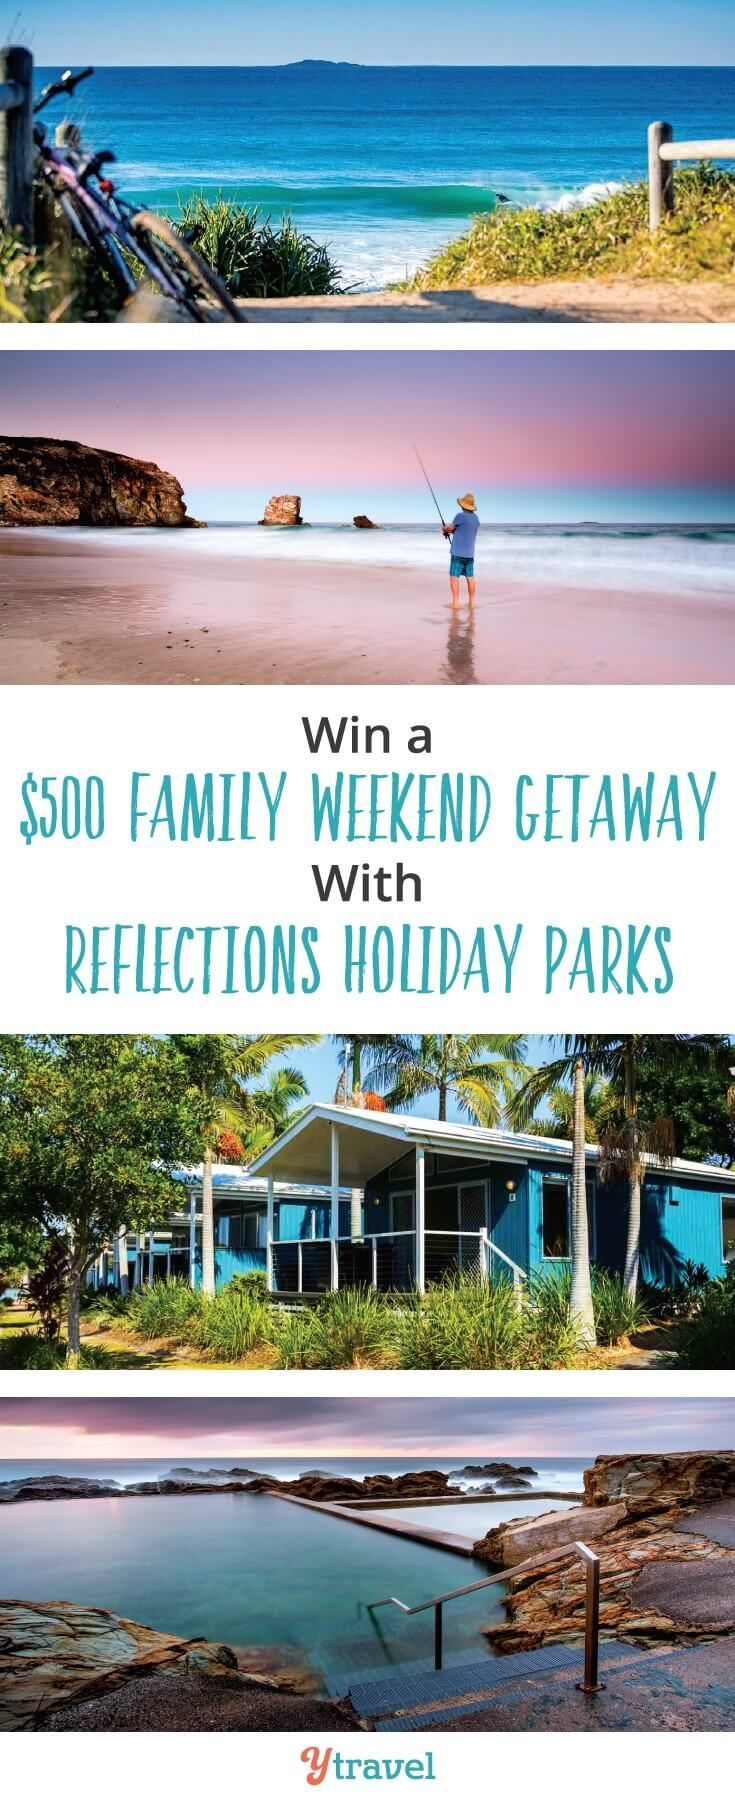 Win a weekend family getaway worth $500 to a Reflections Holiday Park in NSW. Great for family travelers who love camping and caravan park stays